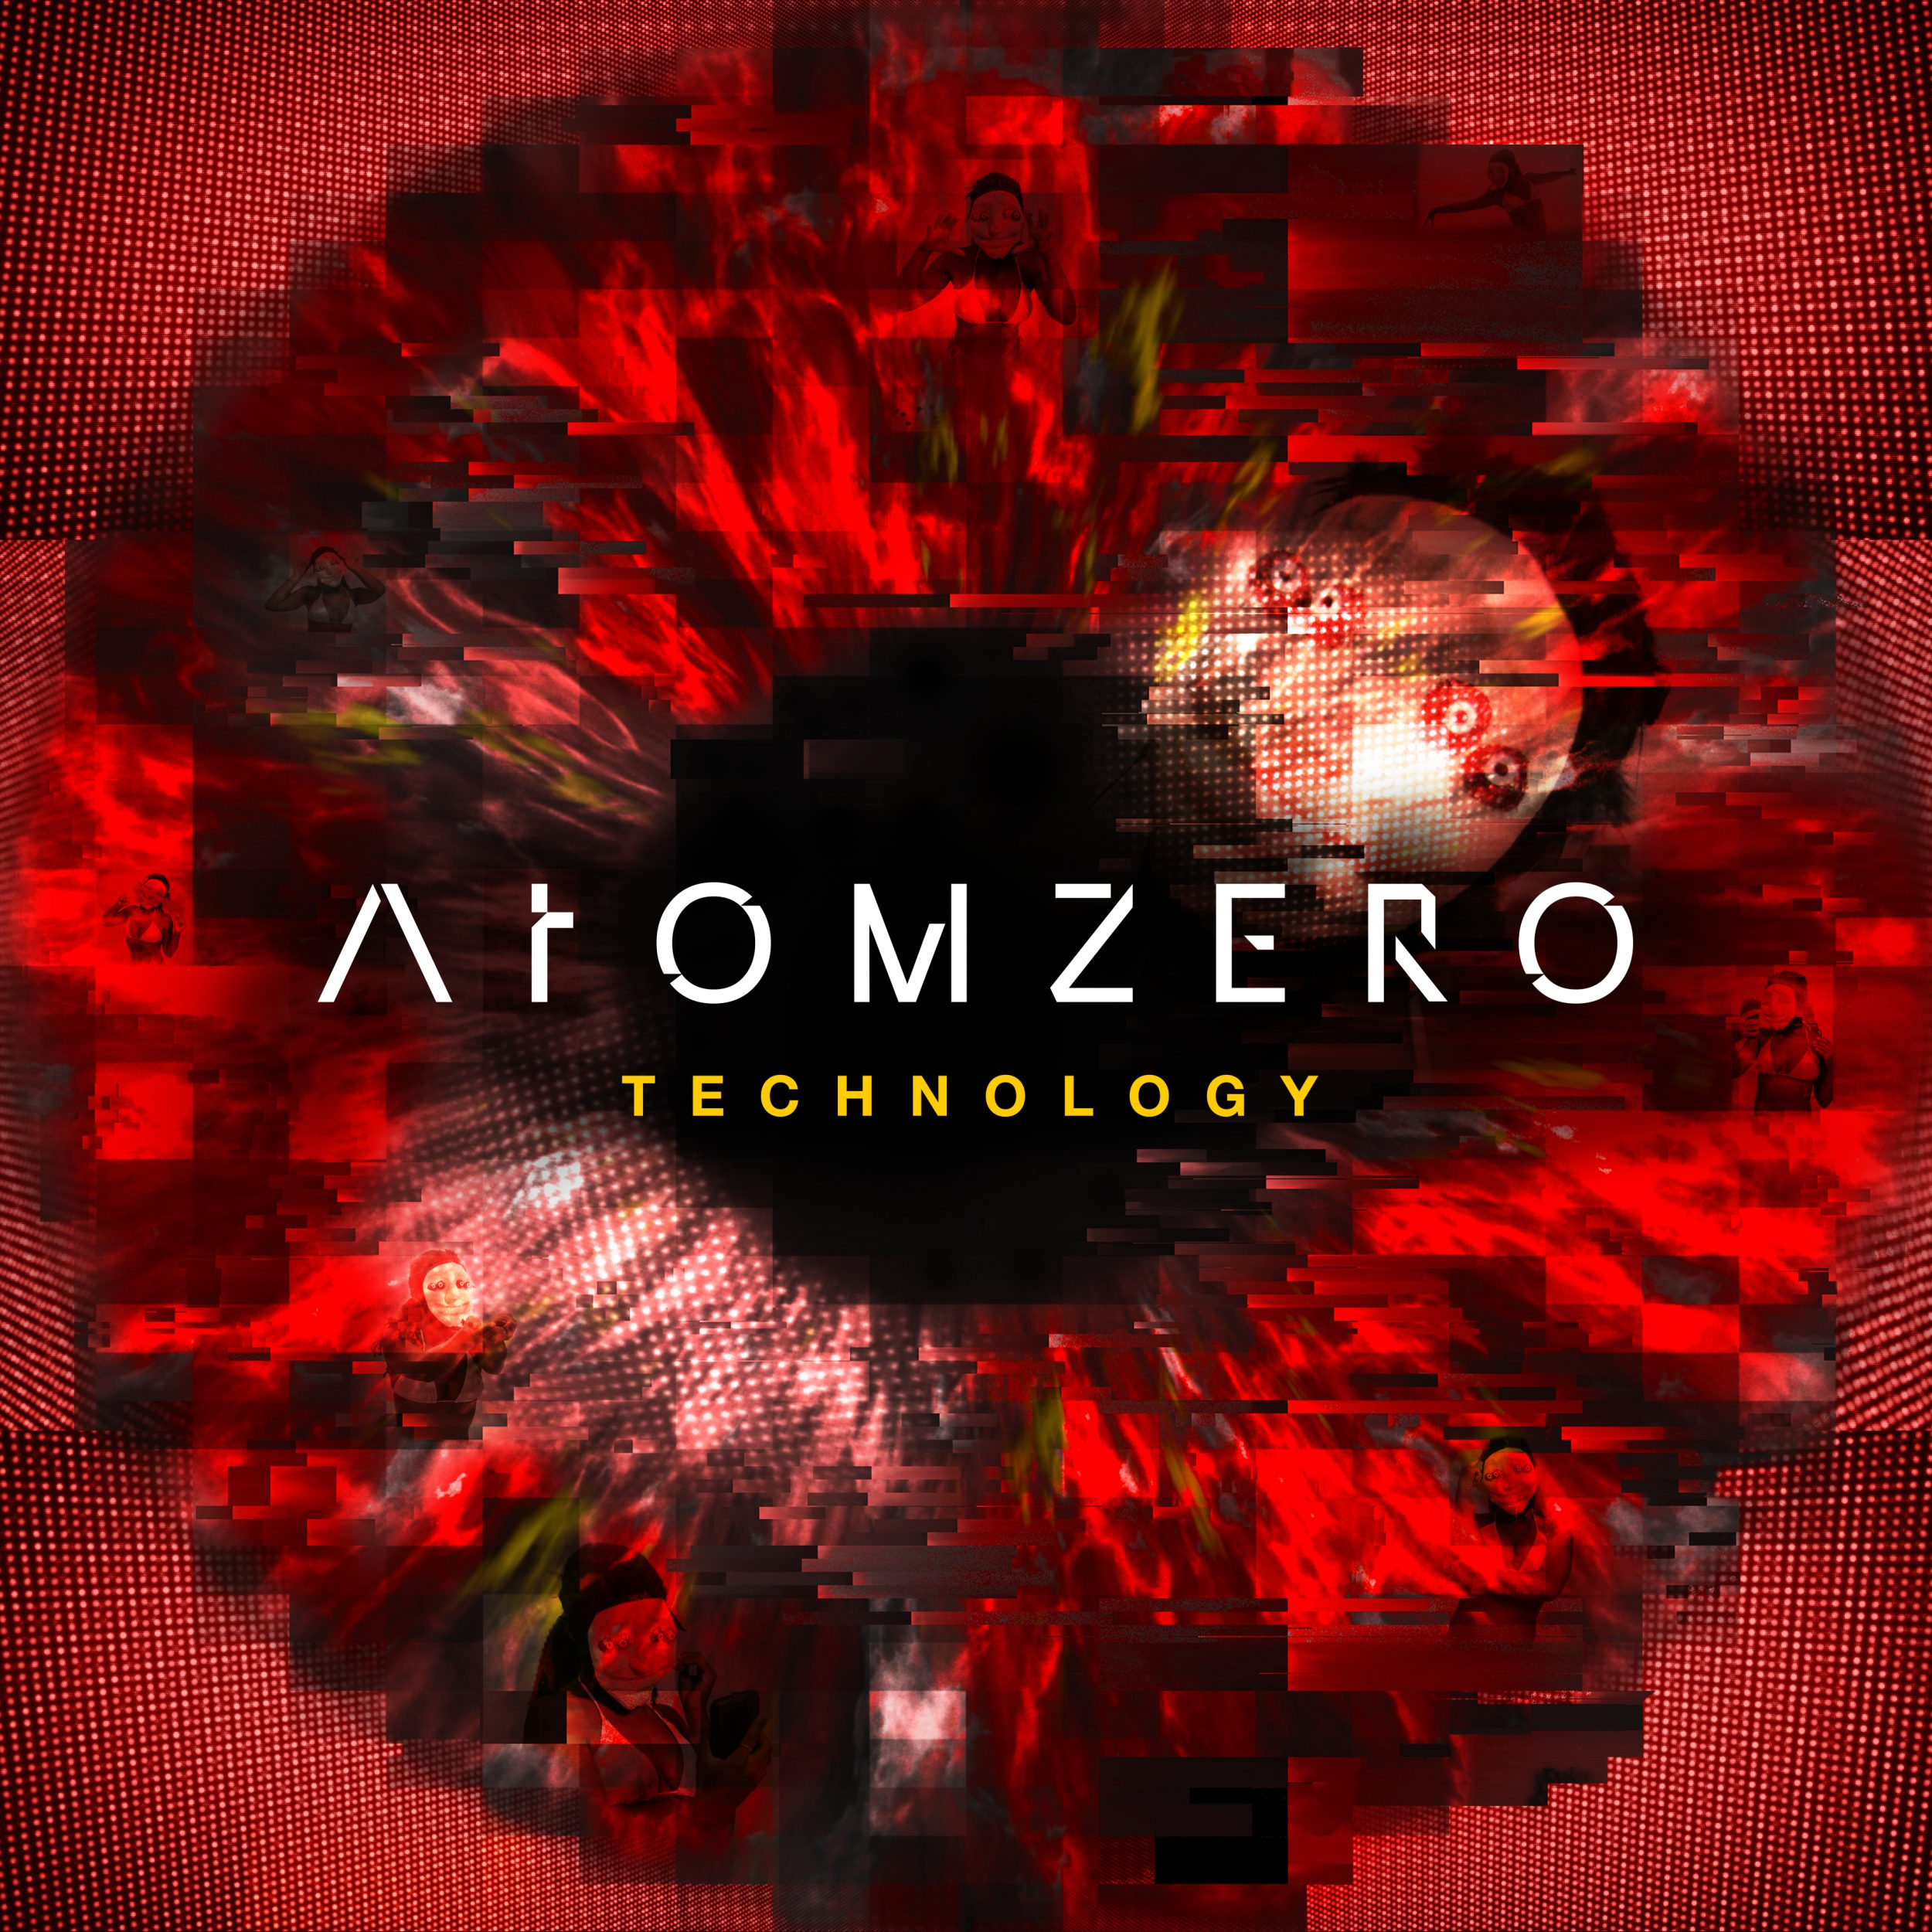 Atomzero – Technology